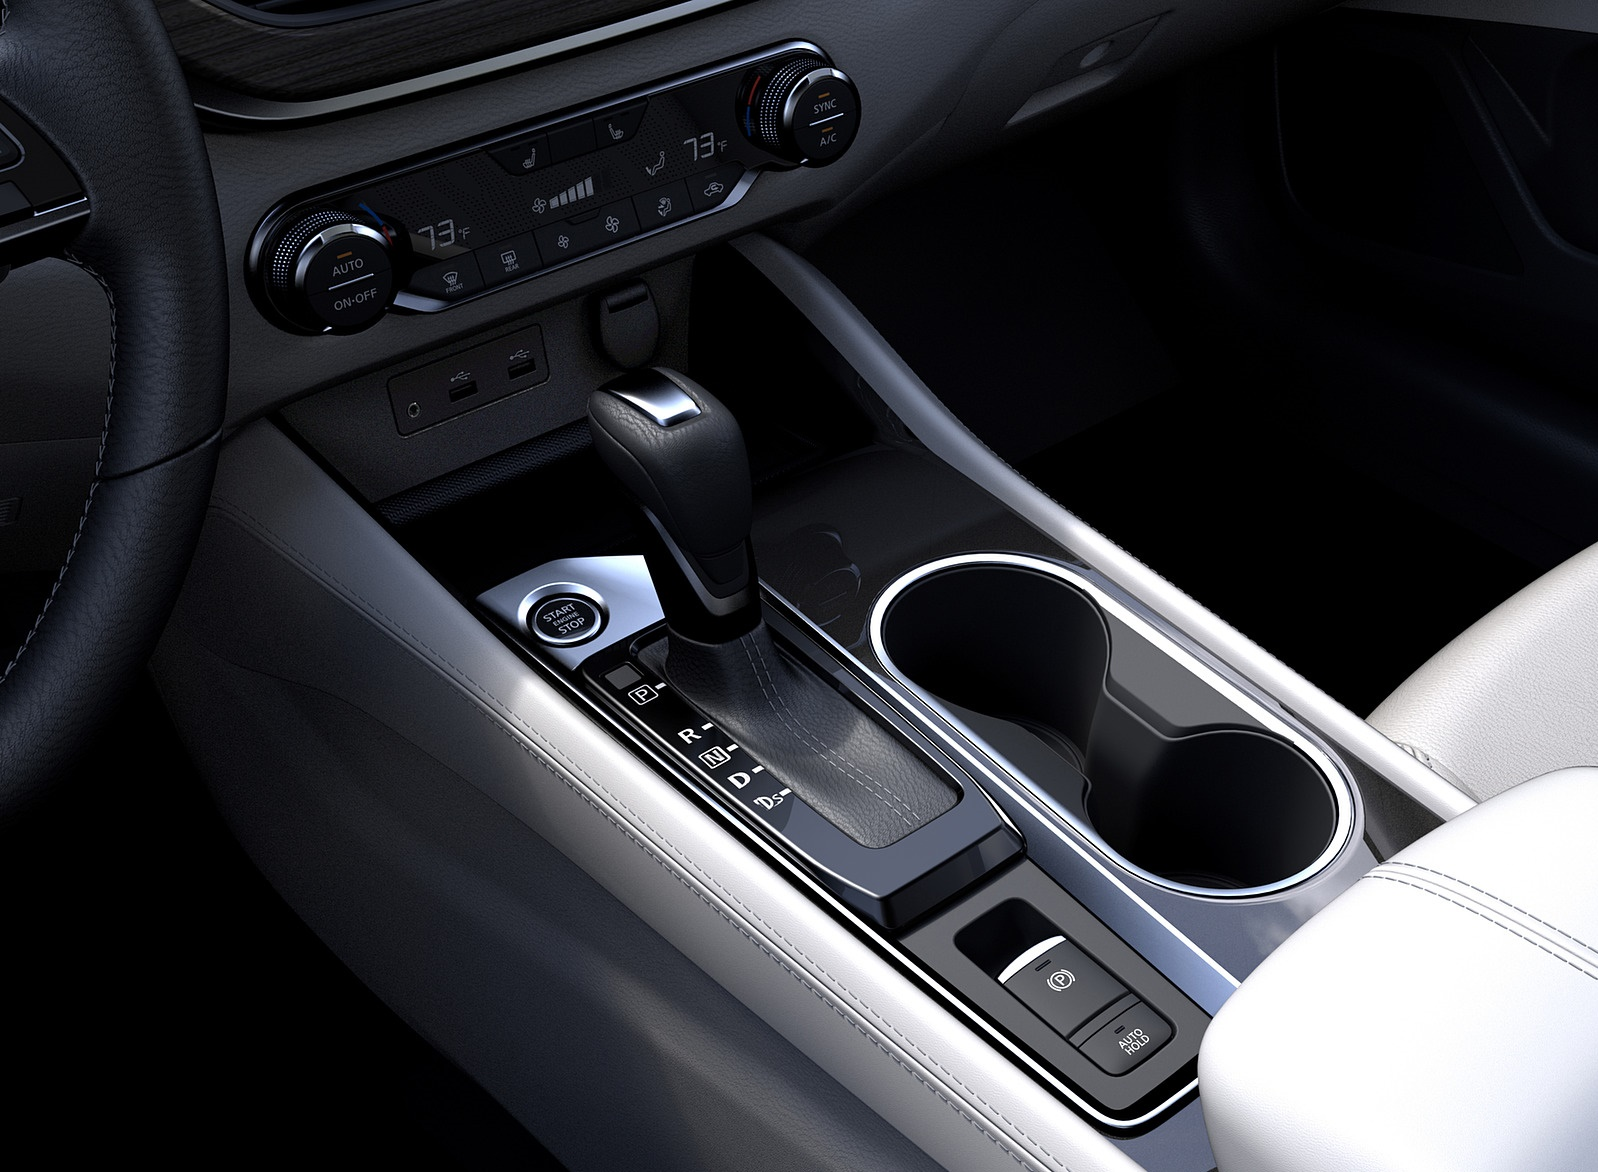 2019 Nissan Altima Interior Detail Wallpapers (15)